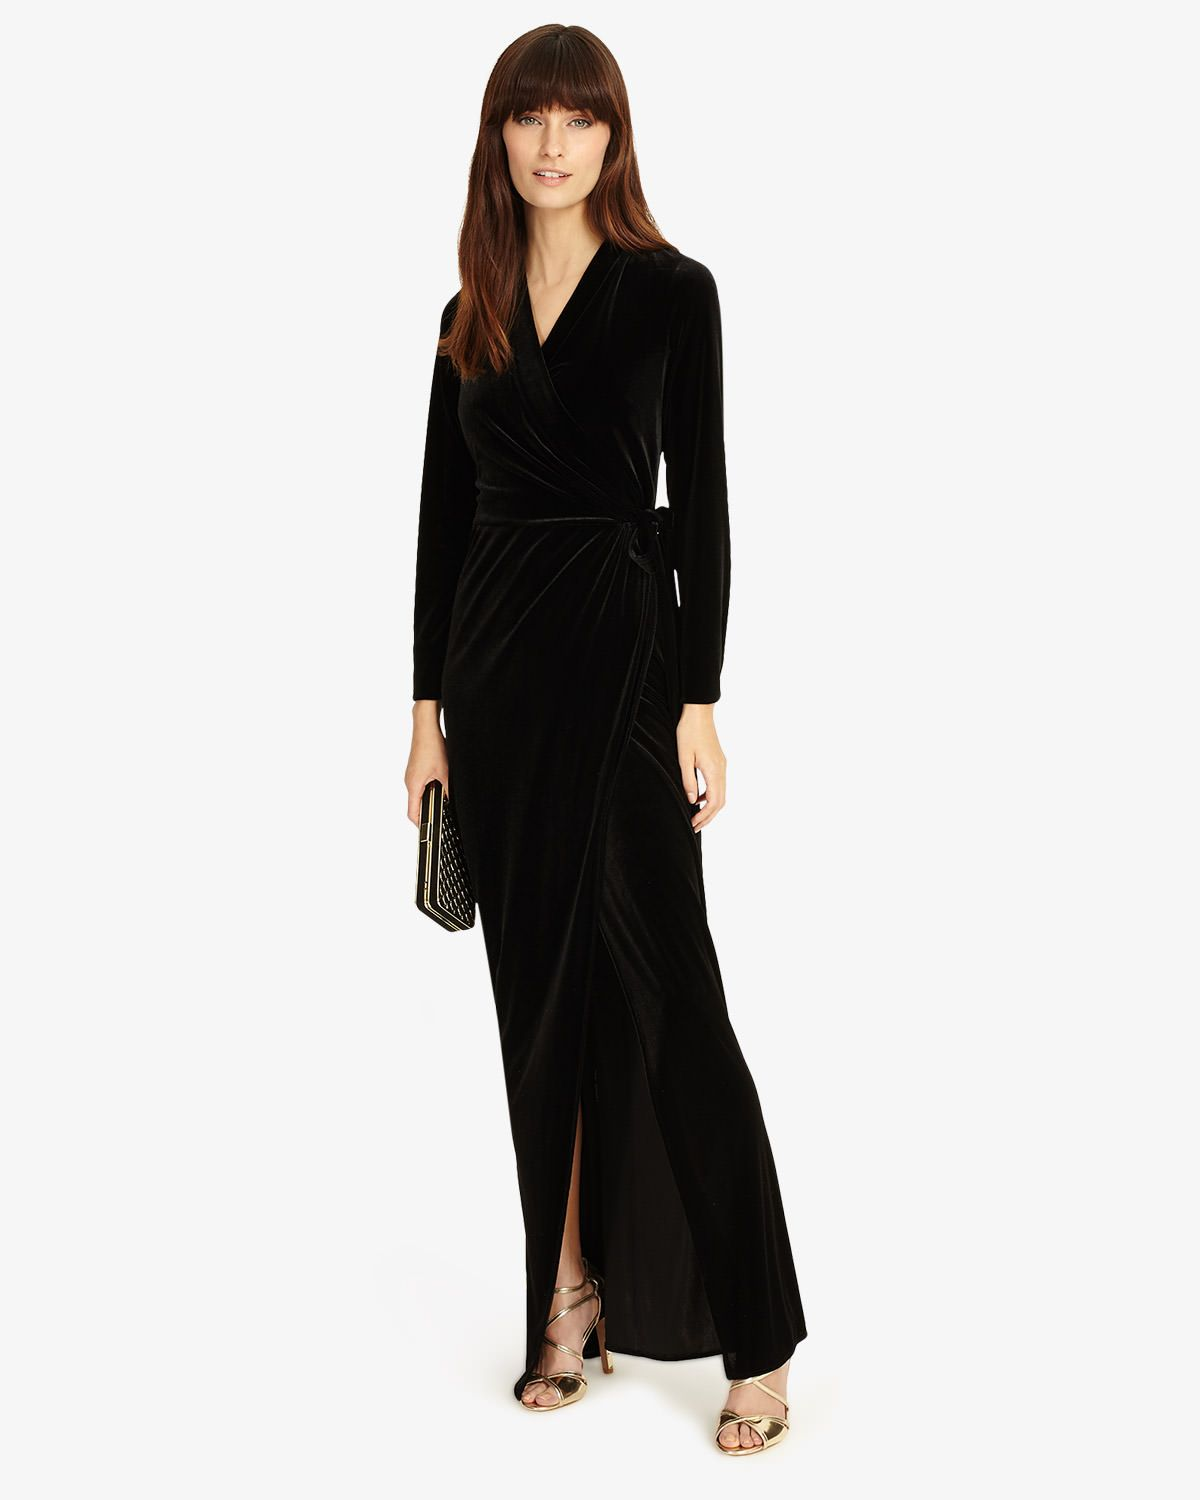 Valeria black velvet full length dress elegant black tie wedding